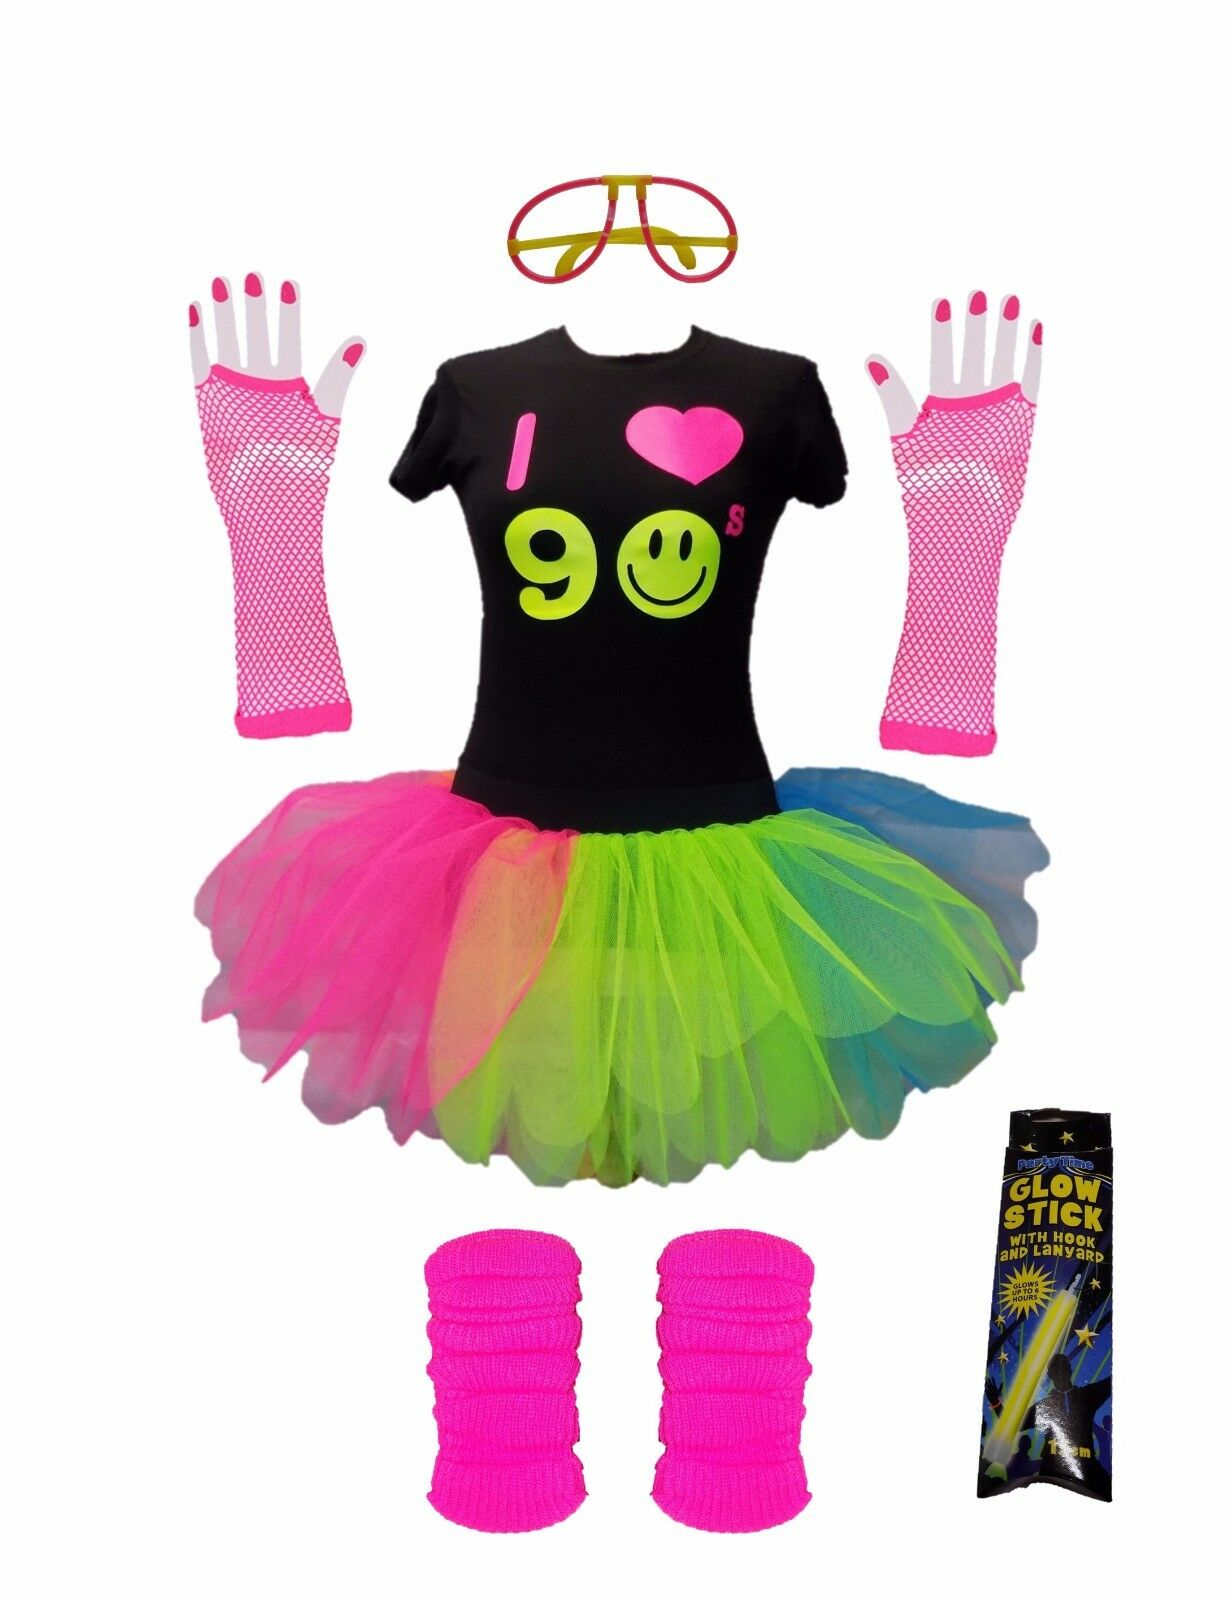 NEON FANCY DRESS TUTU SKIRTS HEN NIGHT PARTY TUTU SKIRTS NEON FANCY DRESS TUTU